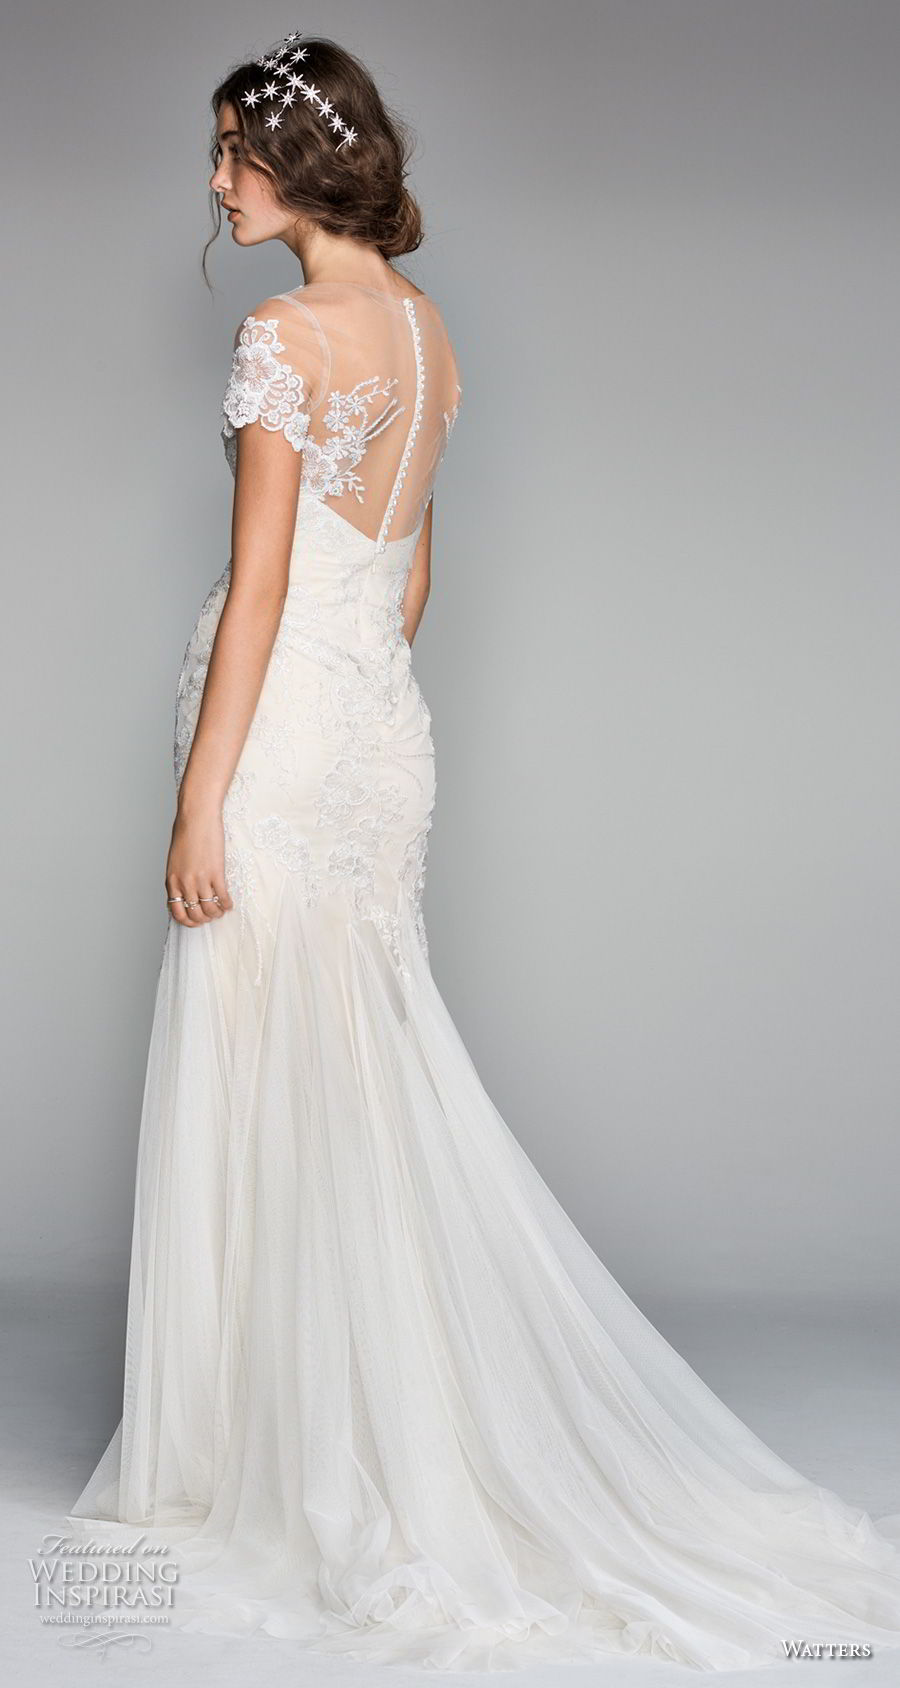 willow by watters spring 2018 short sleeves sheer bateau sweetheart neckline heavily embellished bodice romantic elegant fit and flare wedding dress sheer button back chapel train (10) bv